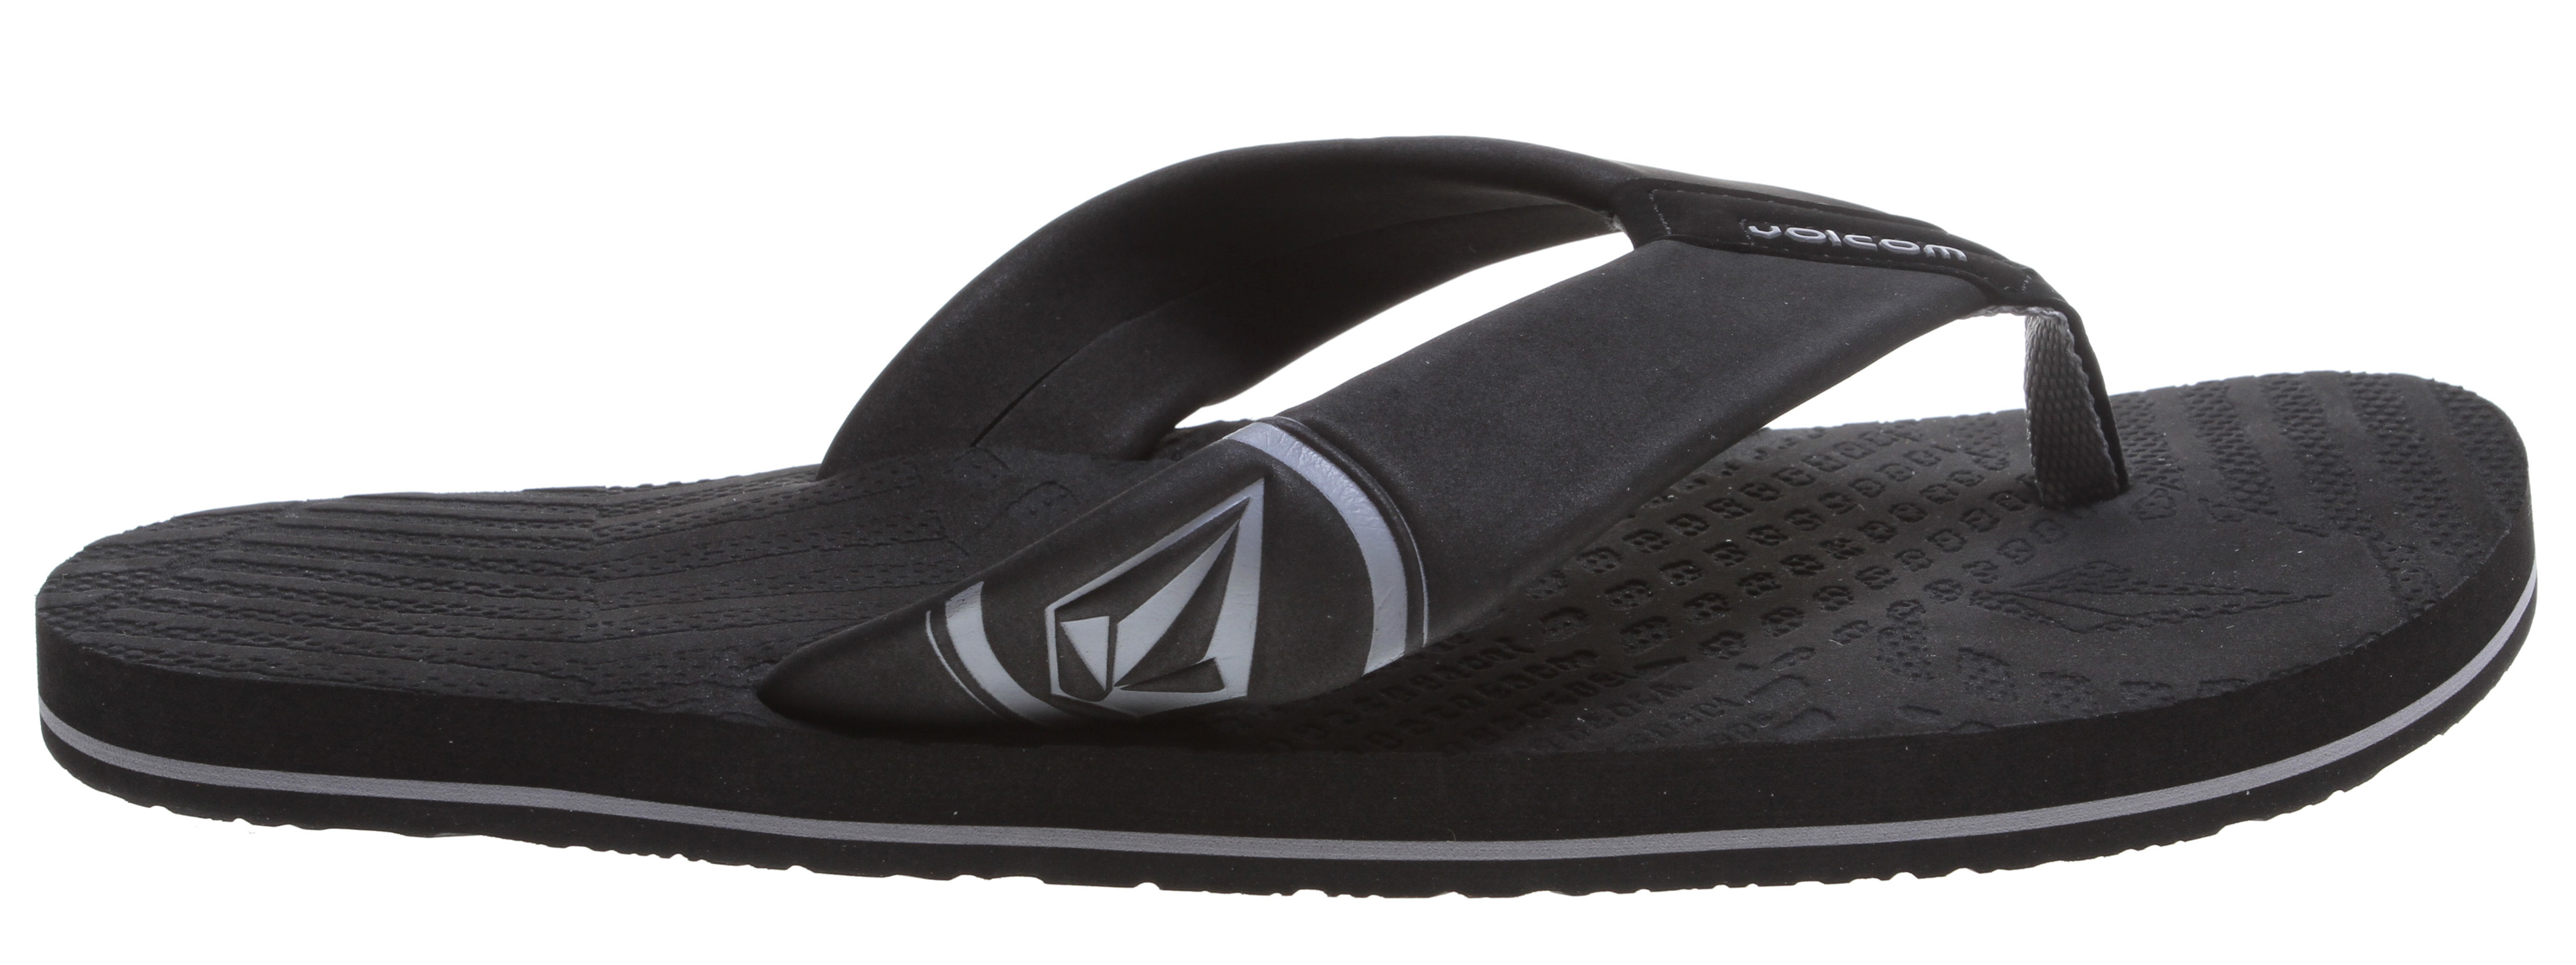 Surf Key Features of the Volcom Burner Sandals: EVA strap with deboss / enamel and rubber patch logo detail Laser etched top sole artwork Contour molded, dual density EVA insole with arch support High density EVA outsole - $23.00